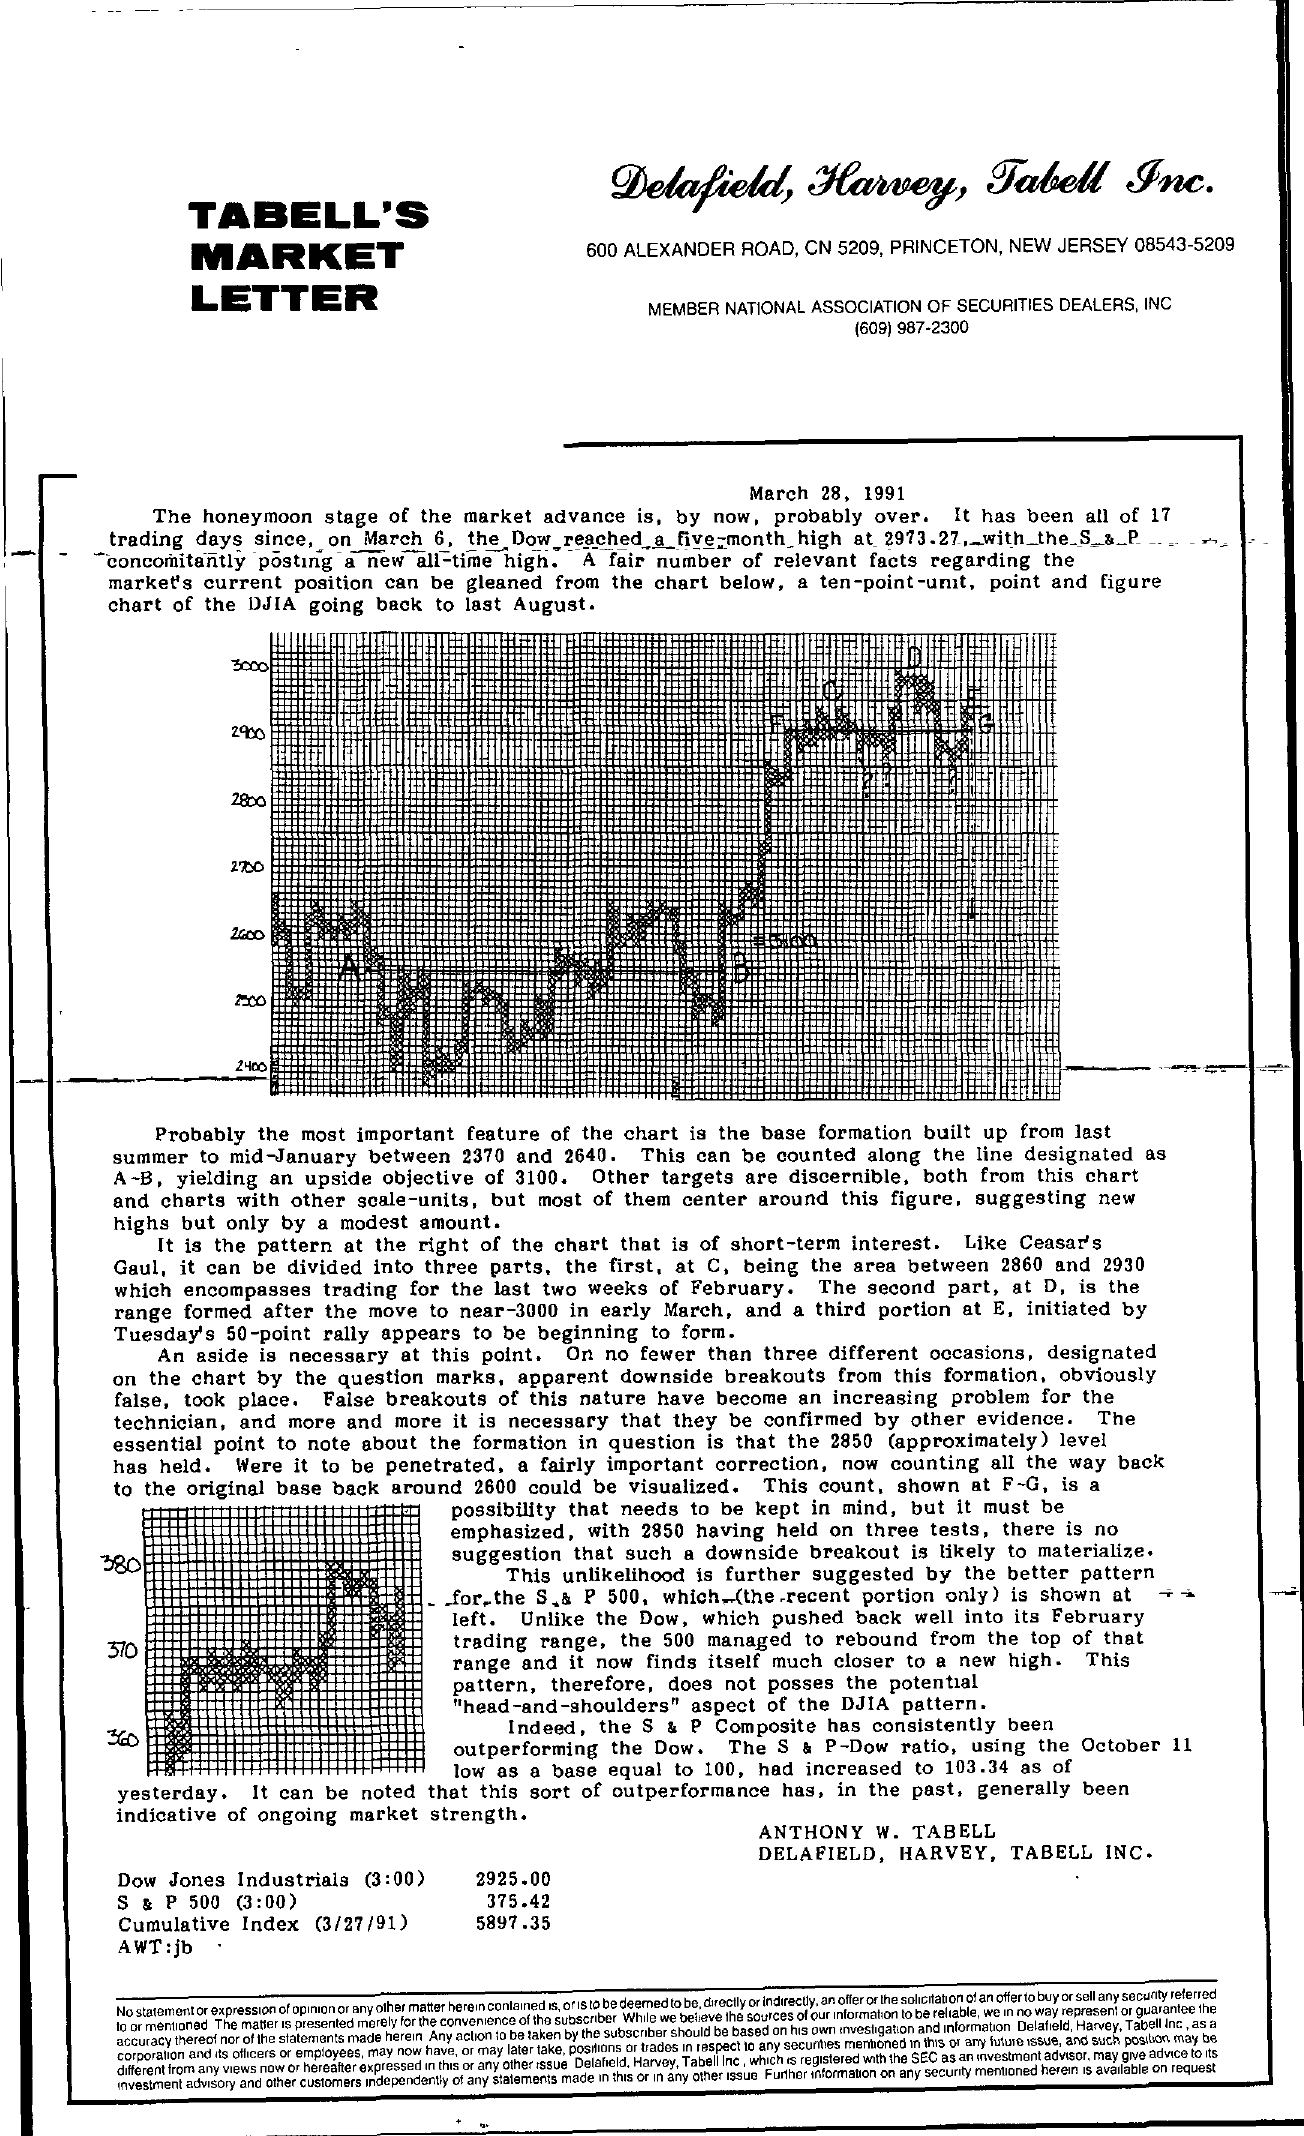 Tabell's Market Letter - March 28, 1991